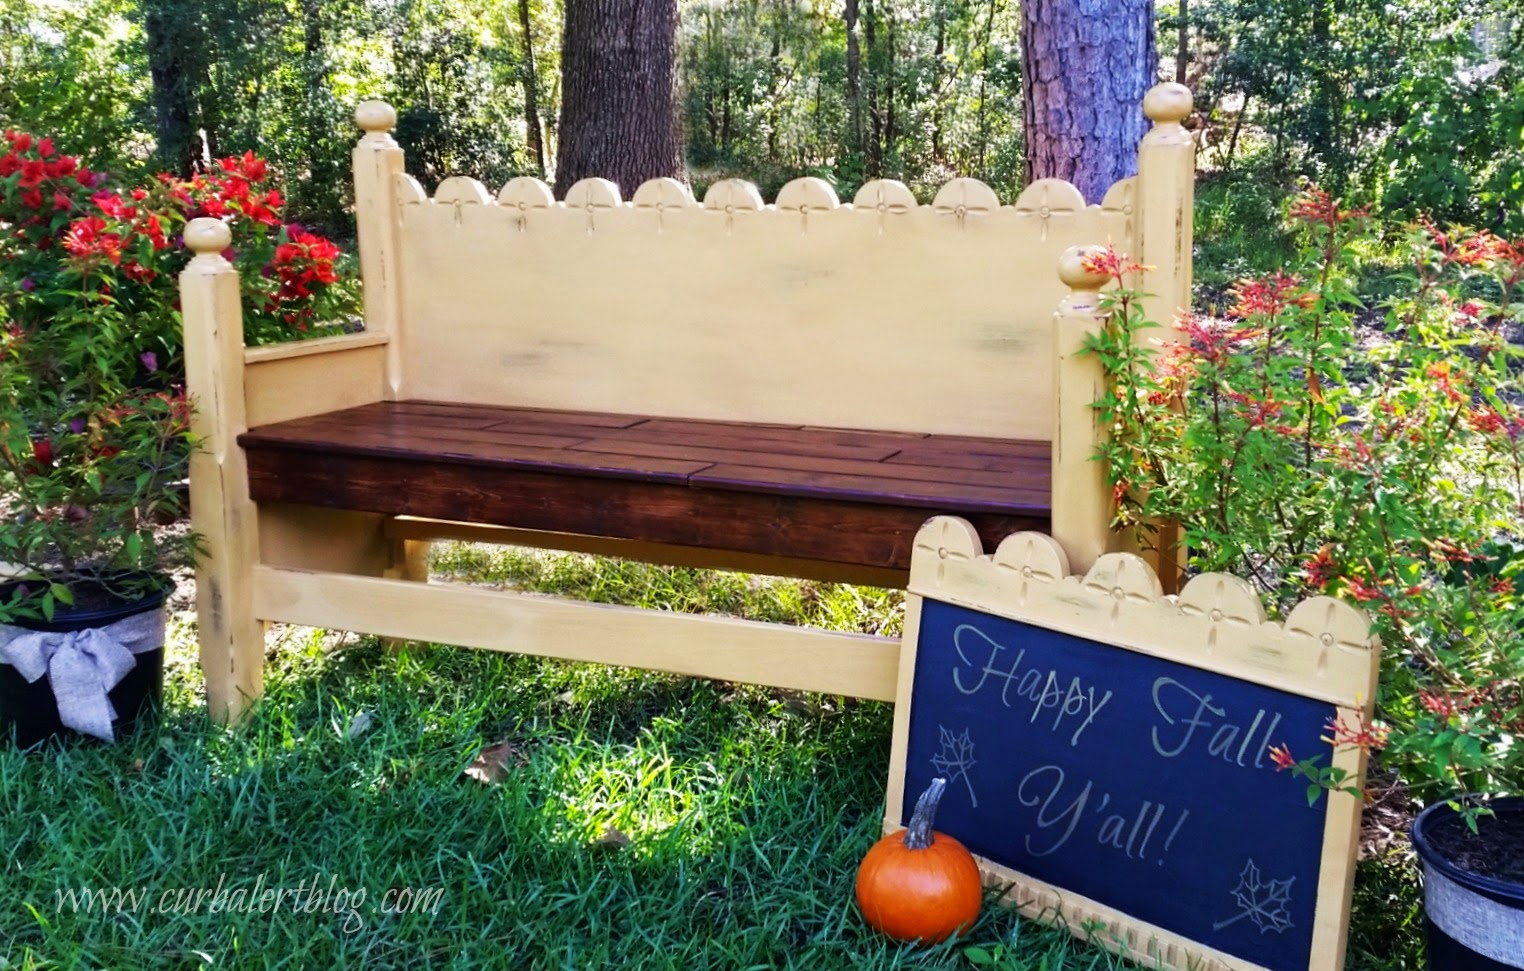 How to make a DIY repurposed headboard bench - by Curb Alert blog